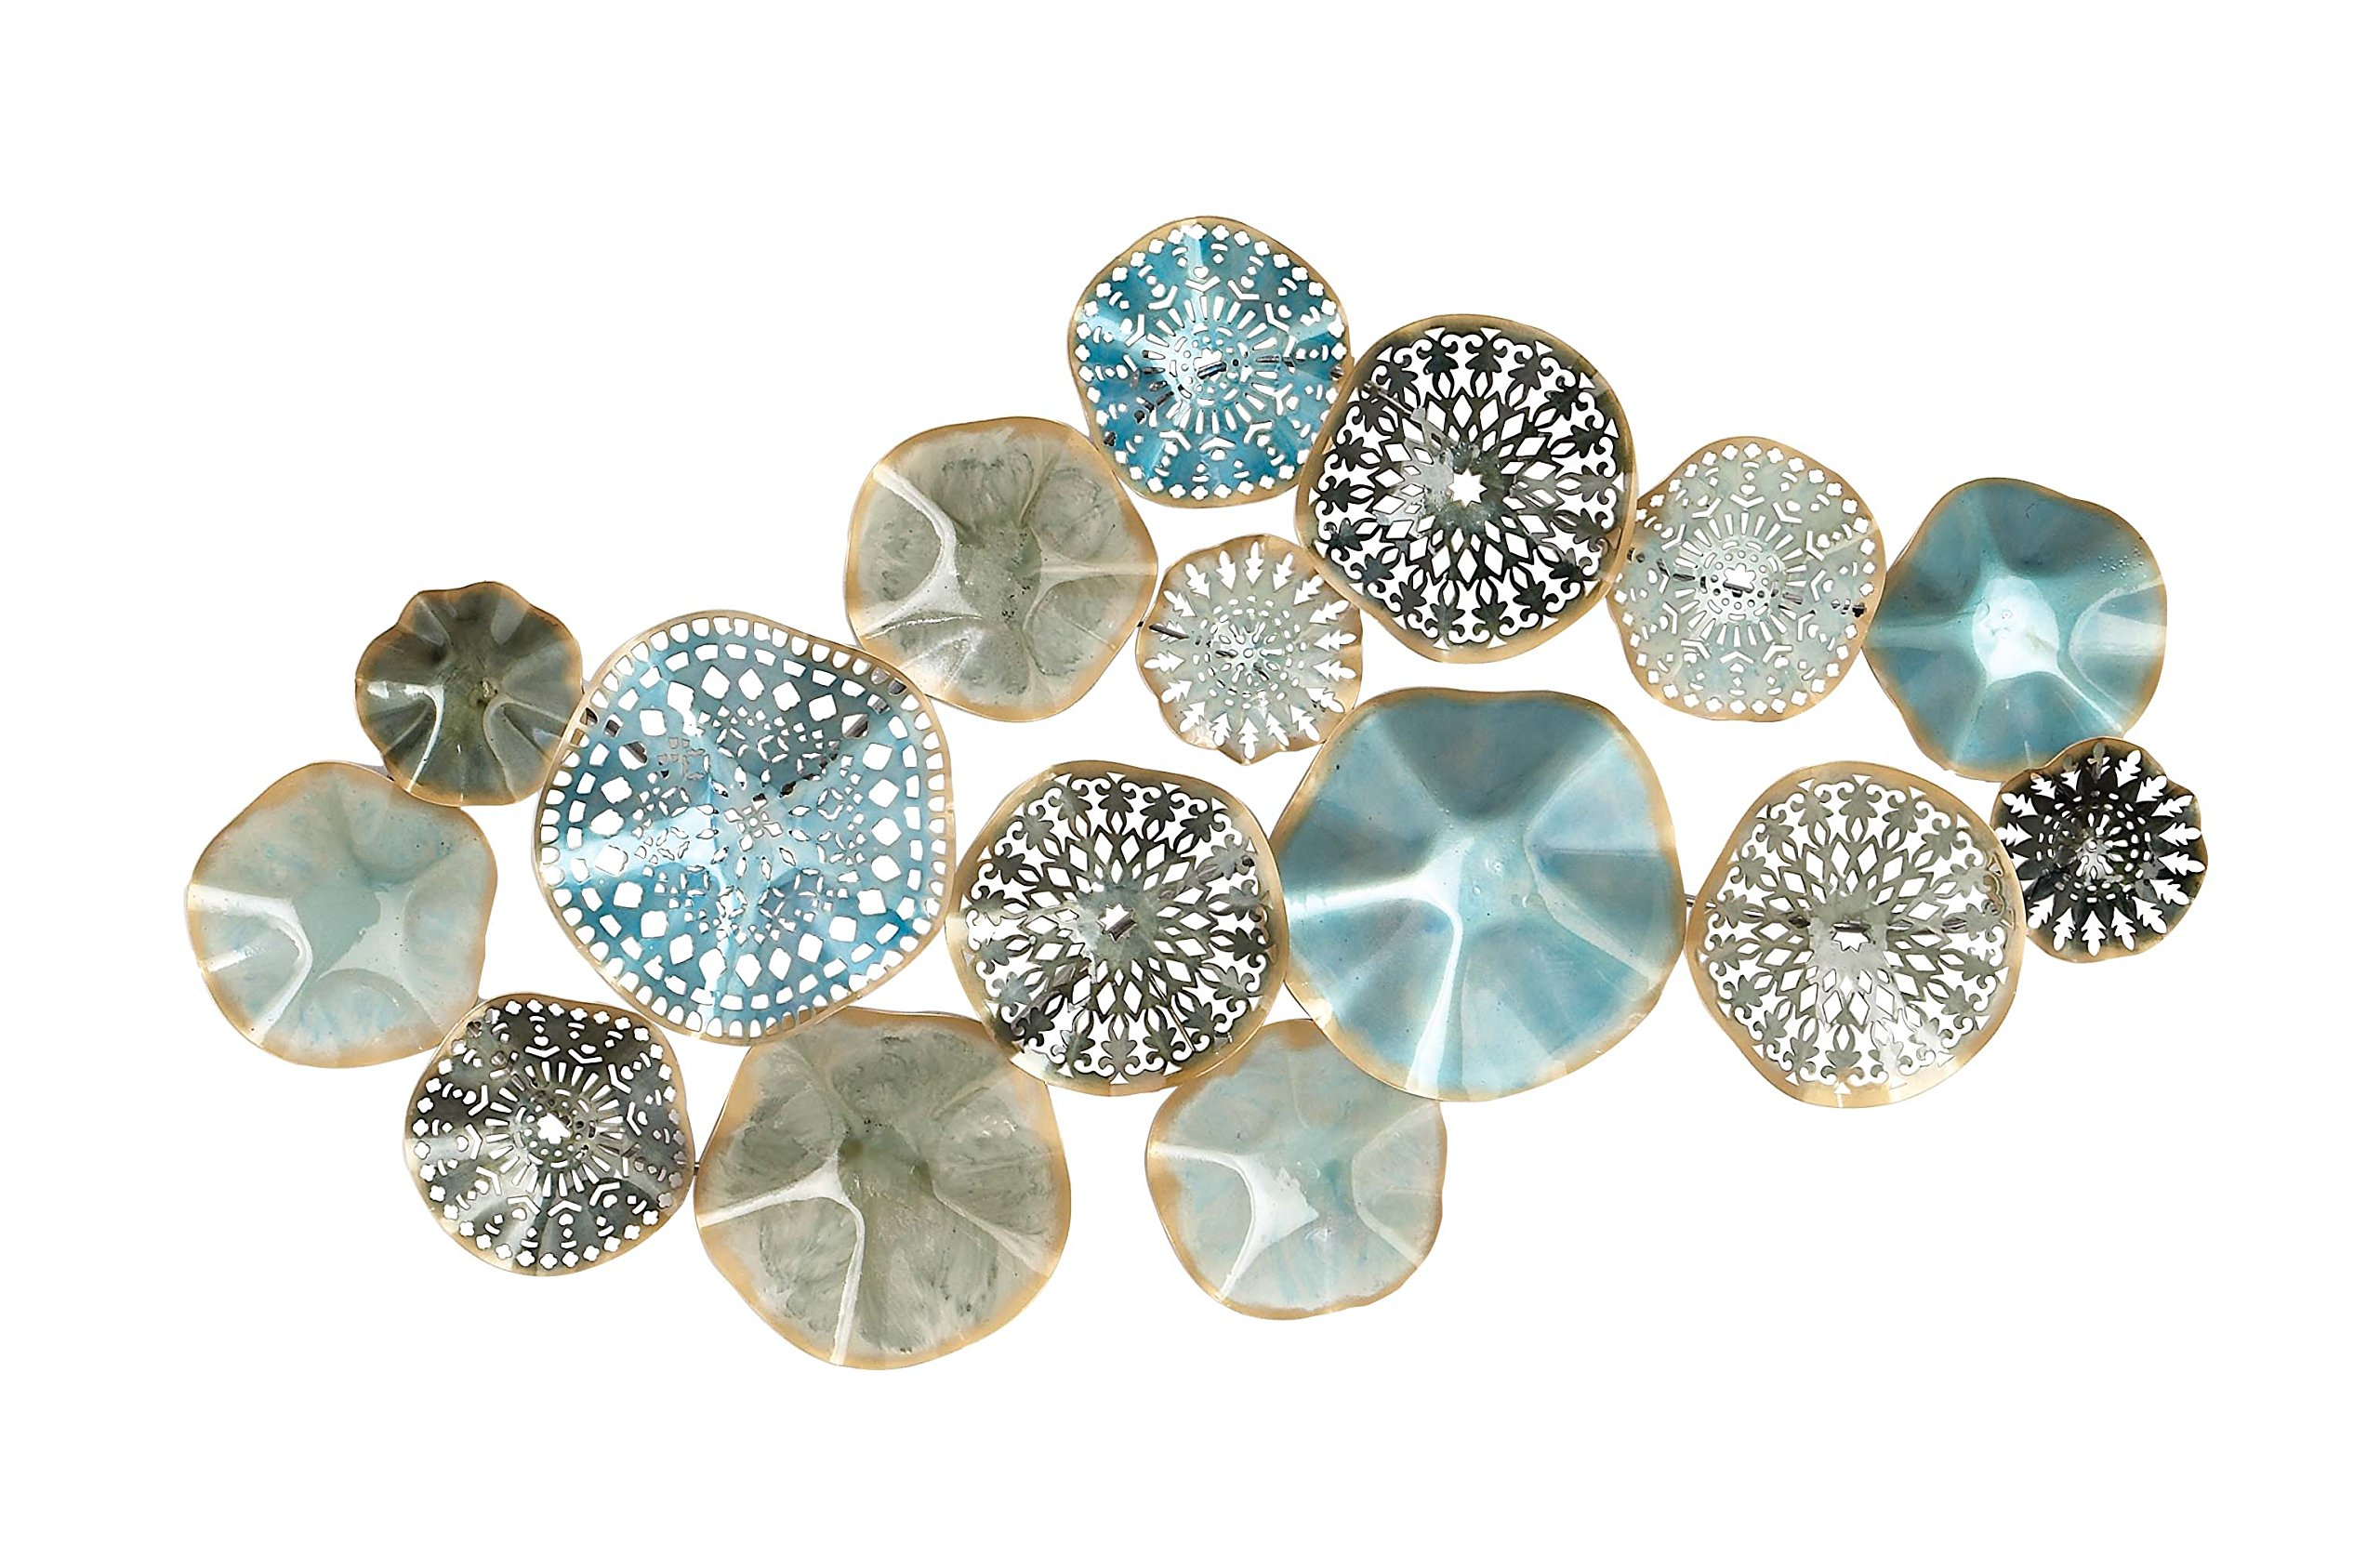 Deco 79 23488 Metal Wall Decor, Turquoise/Black/Light Blue/Gold by Deco 79